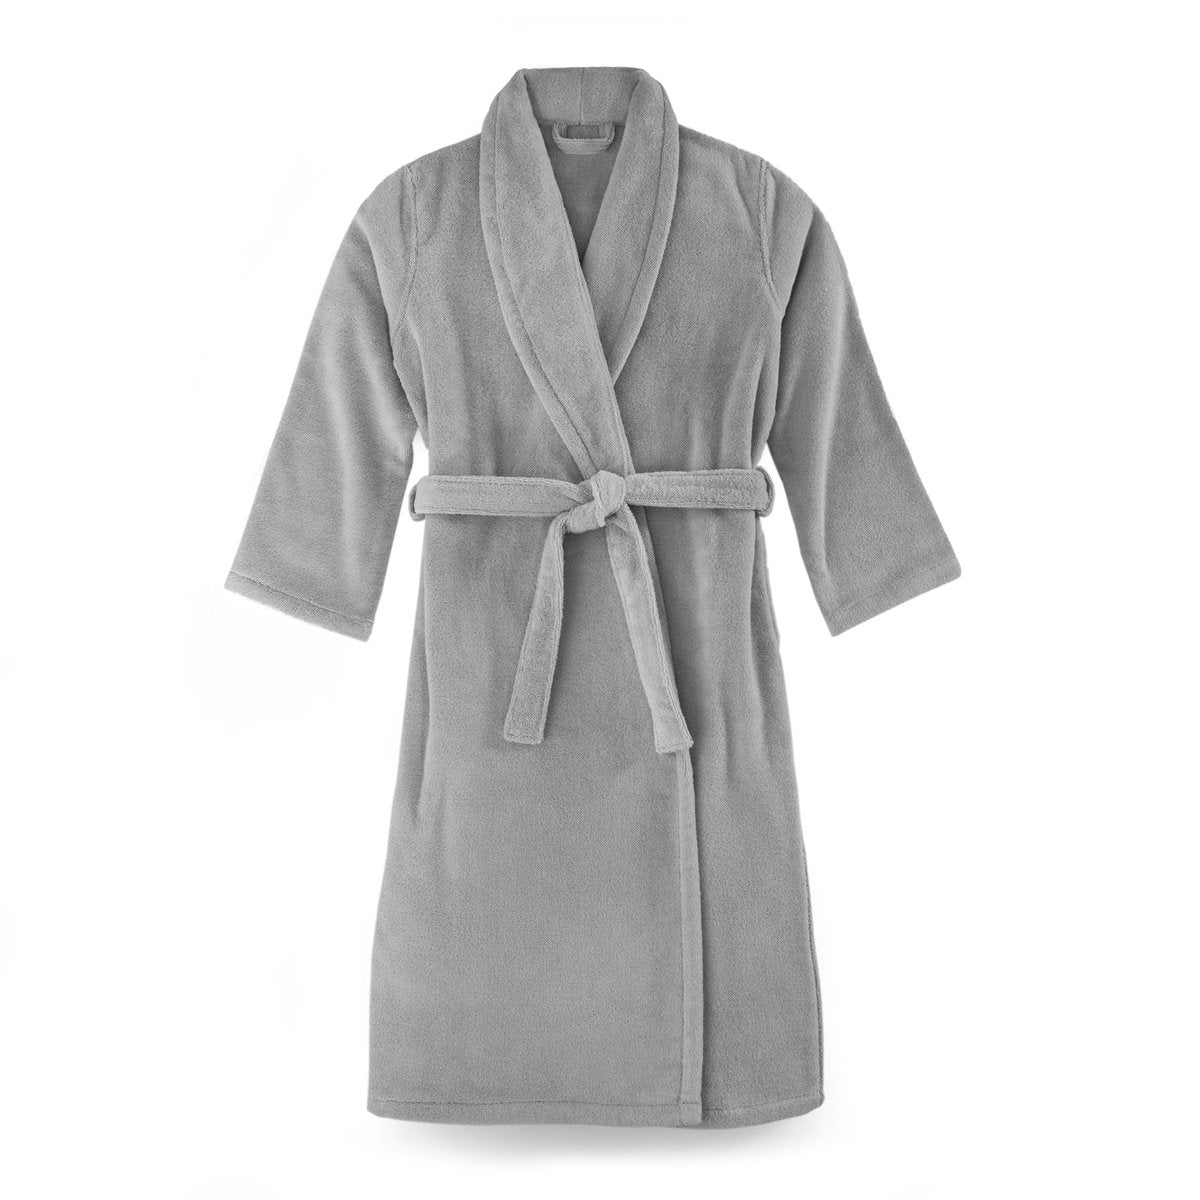 Turkish Plush Robes, 100% Cotton - Zero Twist, Cotton Gift for Couples, Personalized and Monogrammed Robe | Made in Turkey, Birthday Gift